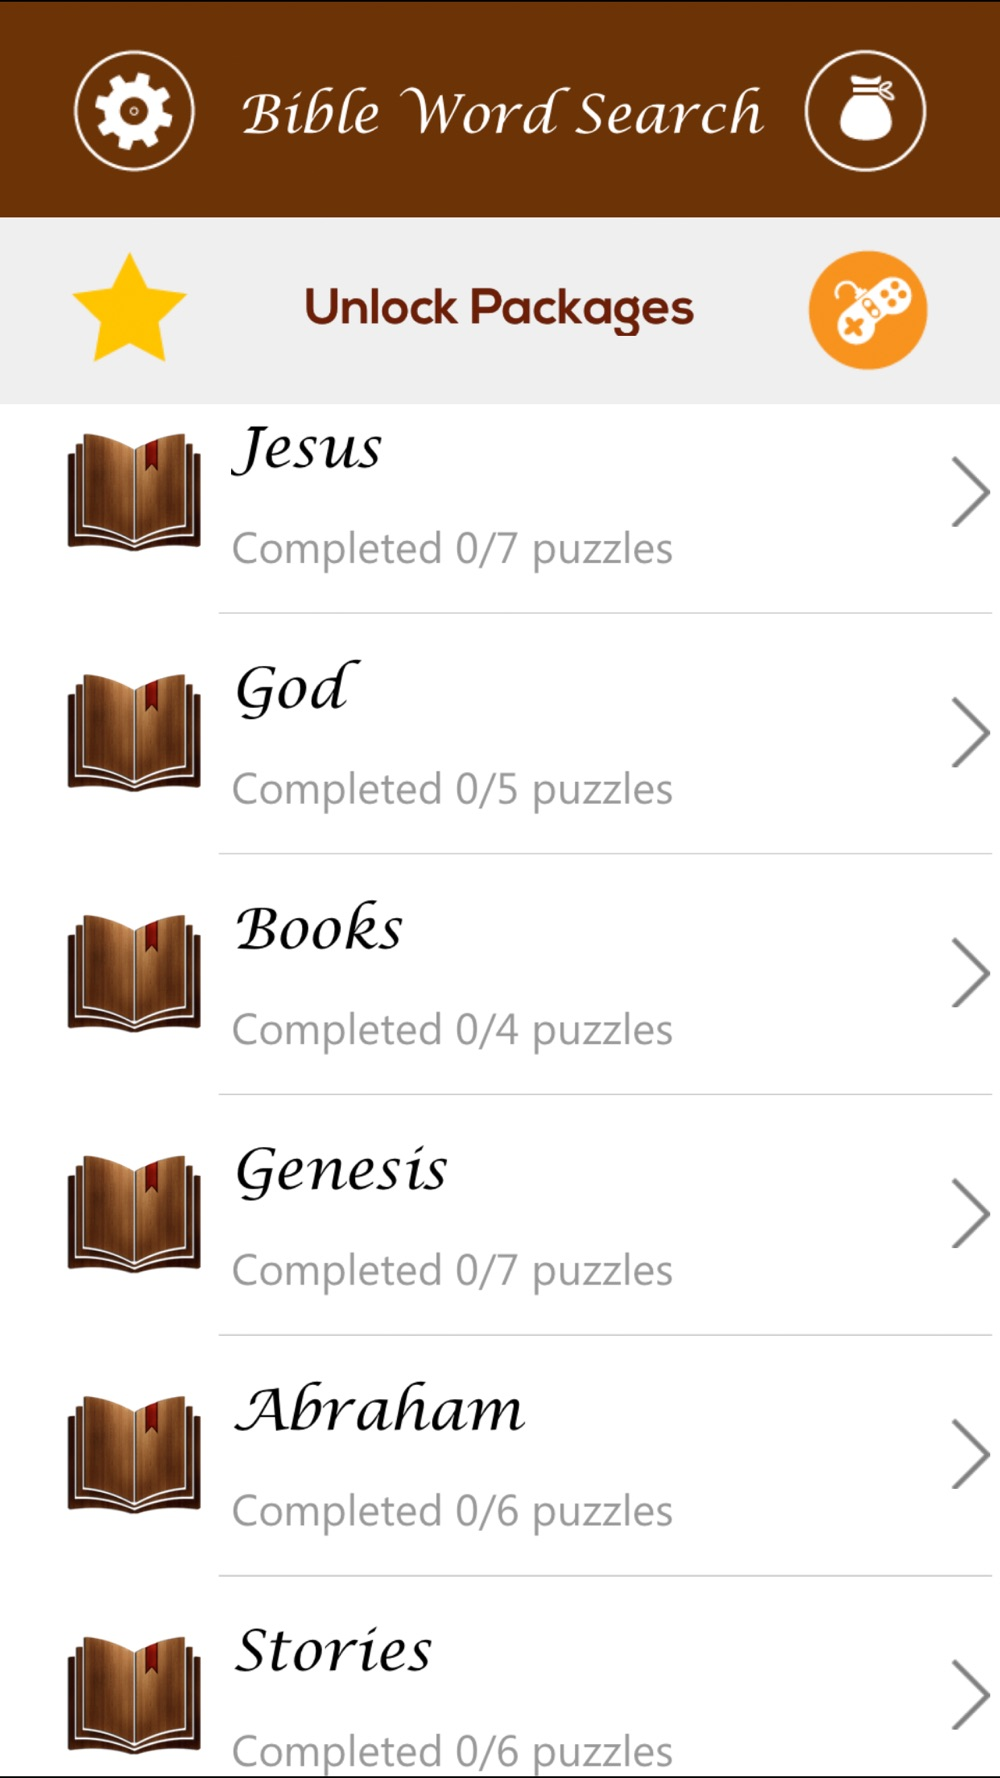 Giant Bible Word Search Puzzle hack tool